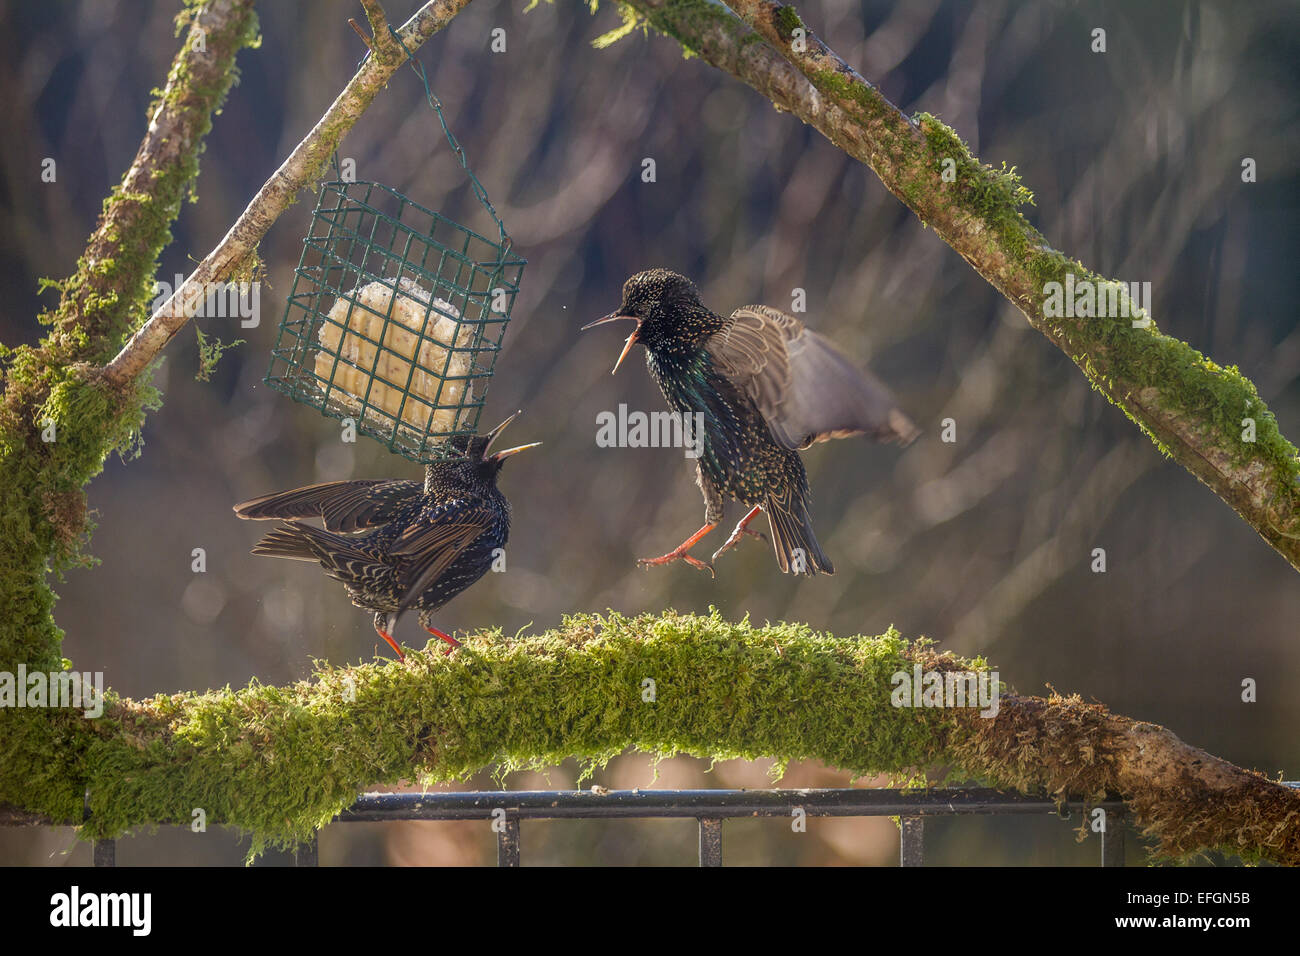 Two starlings on squabbling over food whilst stood on a mossy perch. They have their wings out and beaks open. - Stock Image